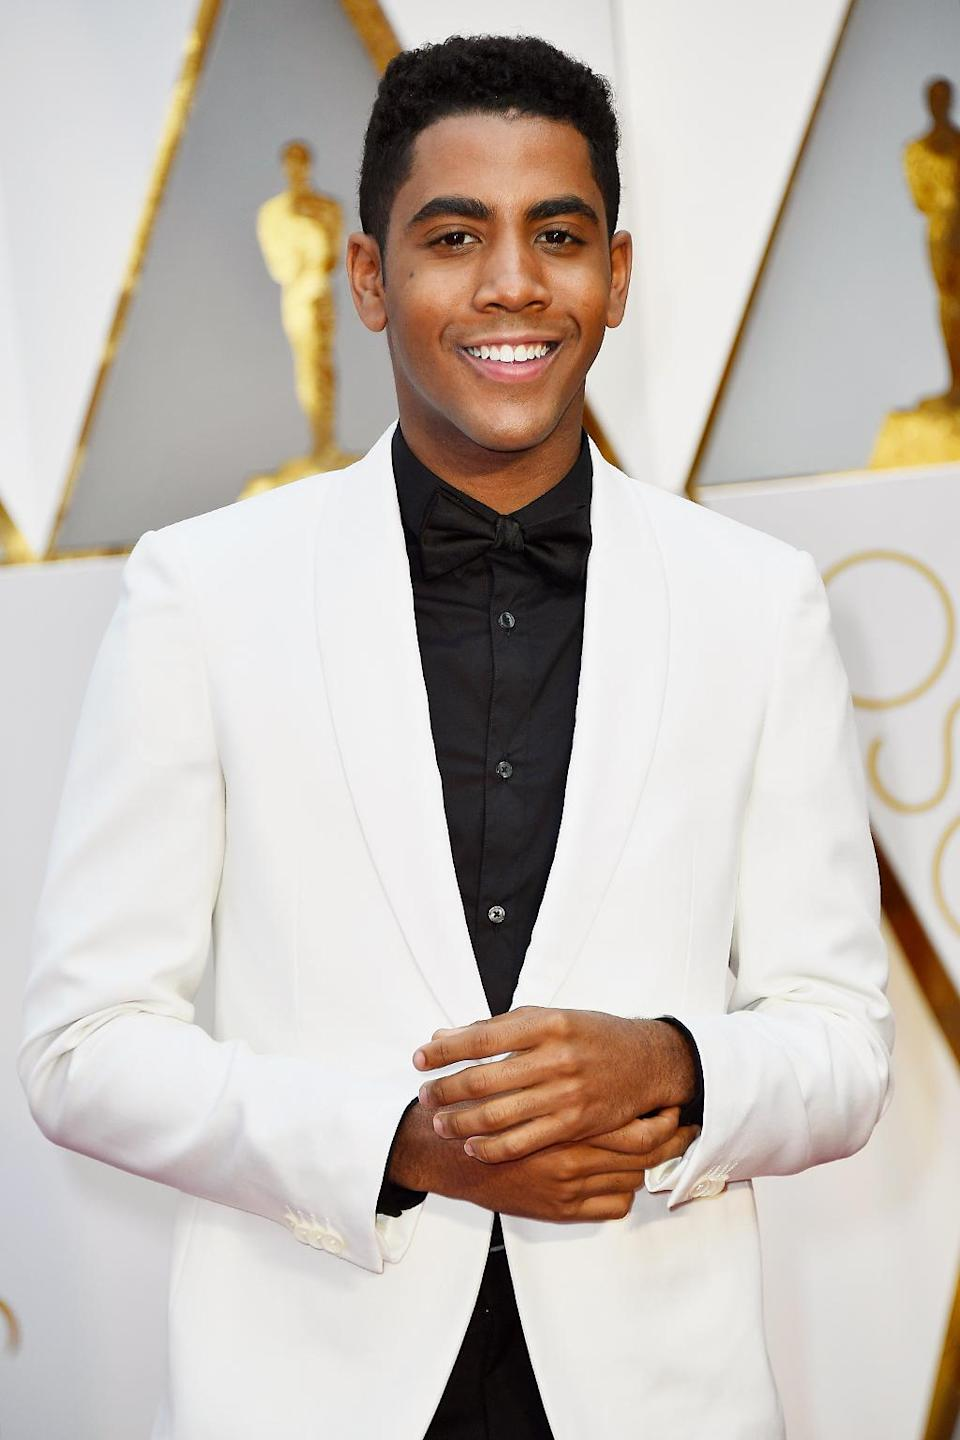 <p>Jharrel Jerome attends the 89th Annual Academy Awards at Hollywood & Highland Center on February 26, 2017 in Hollywood, California. (Photo by Frazer Harrison/Getty Images) </p>